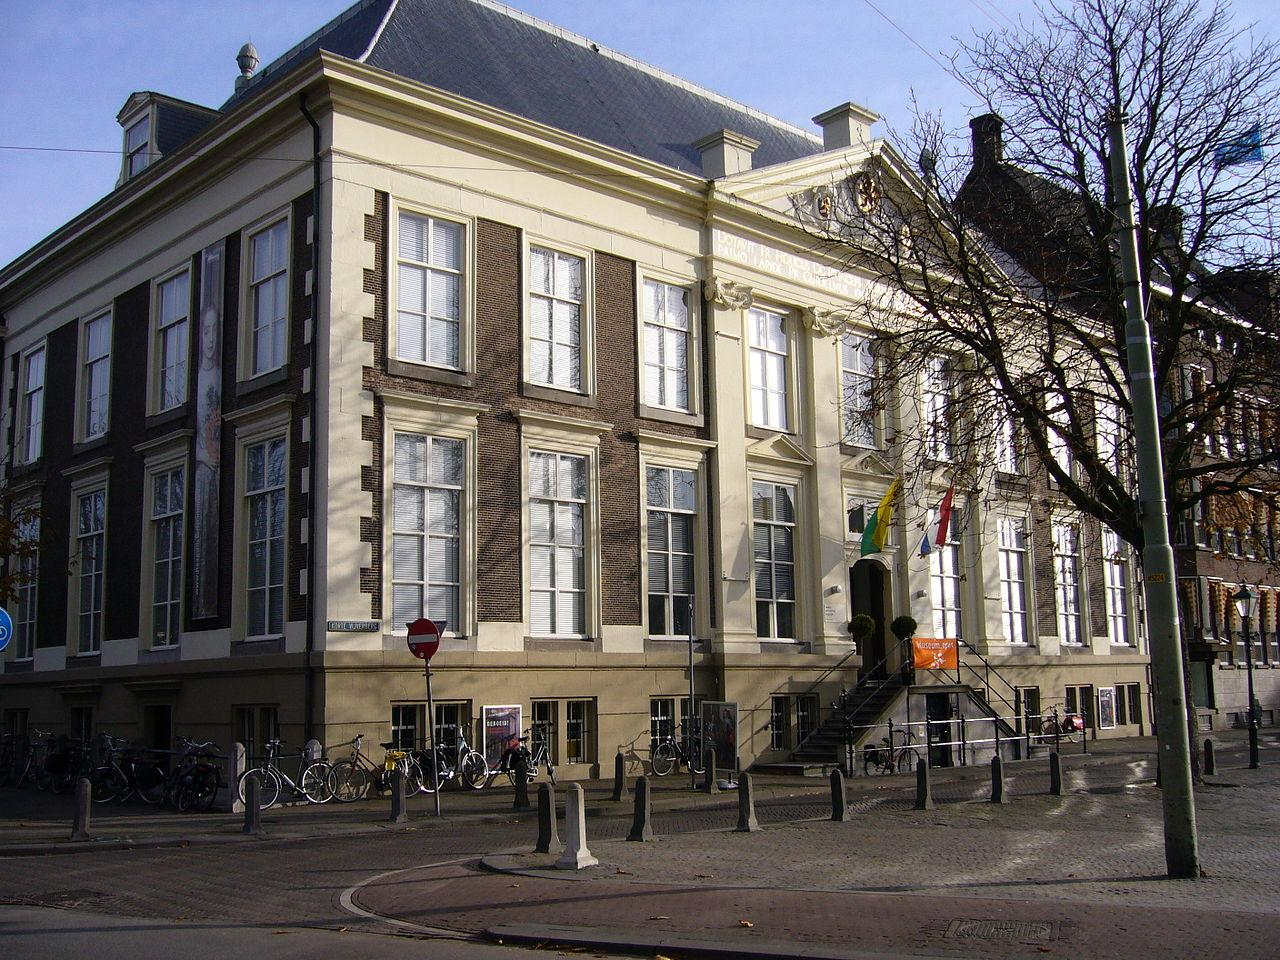 Haags Historisch Museum in Den Haag Zien Musea & galleries - foto 1